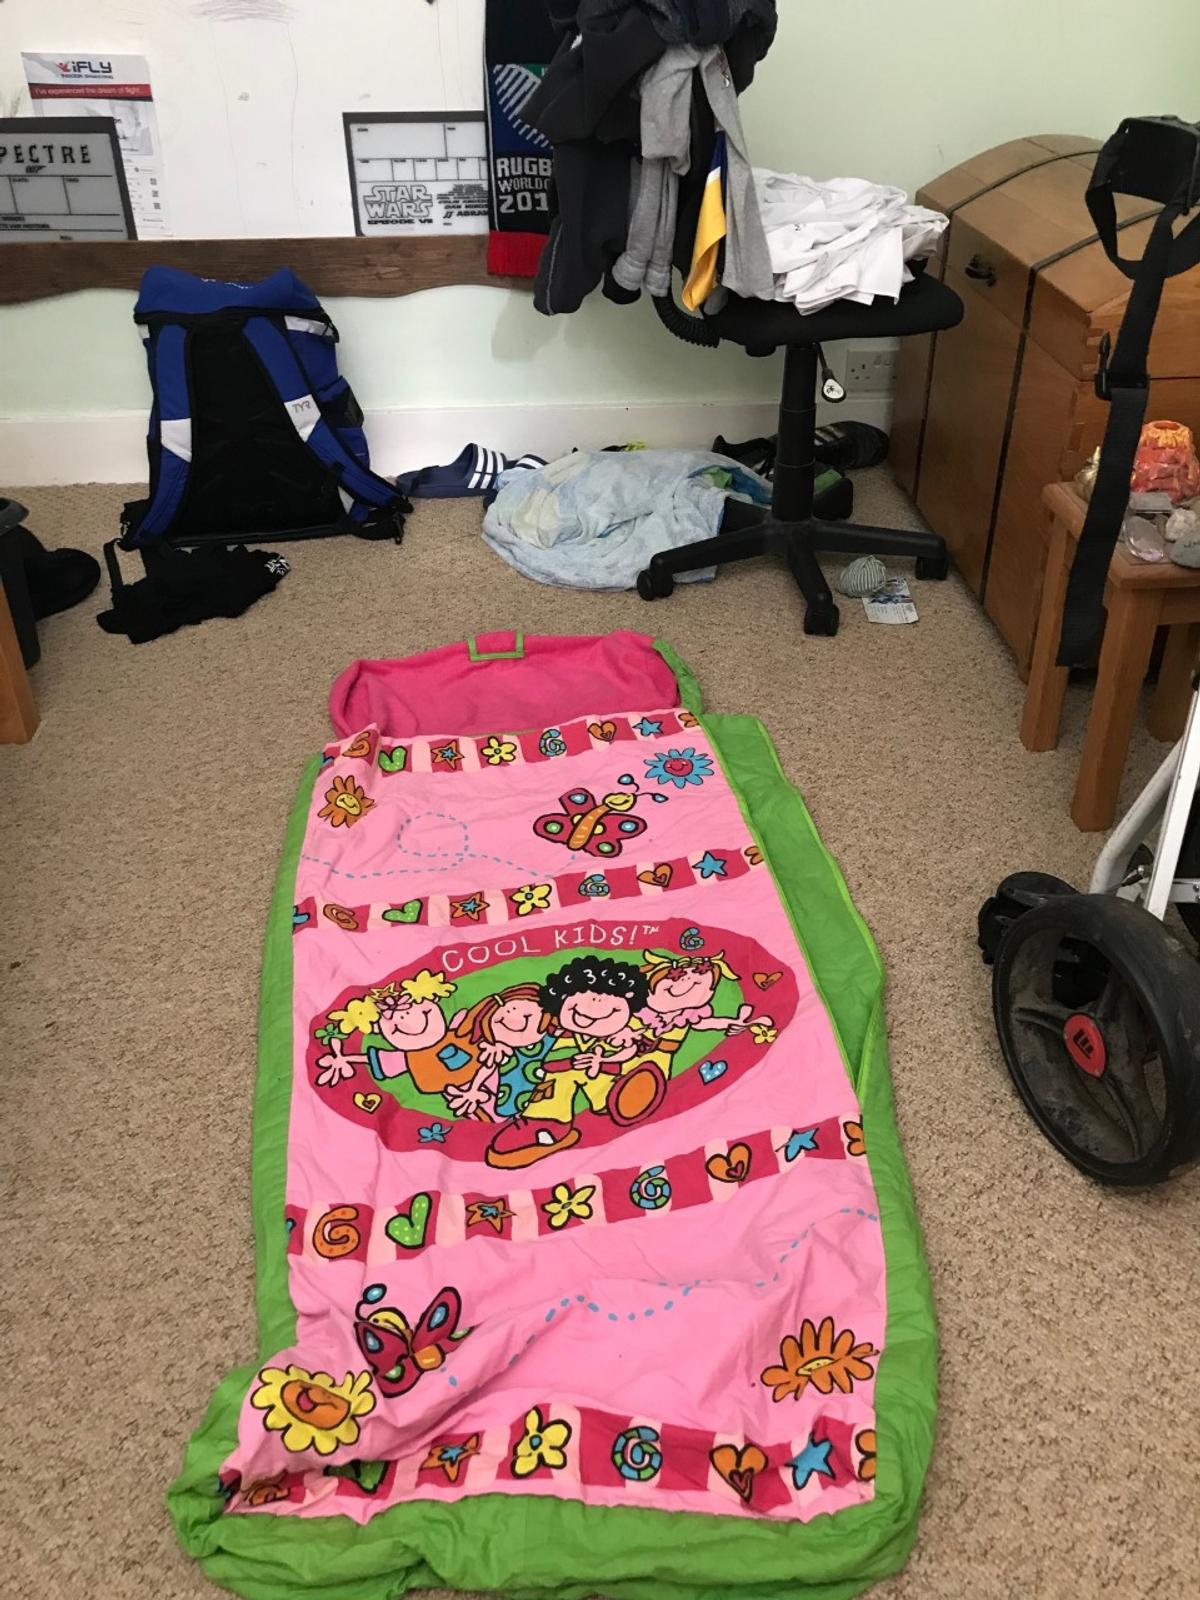 originally a ready bed but the inflatable punctured so now used as a sleepsack for sleepovers, with bag